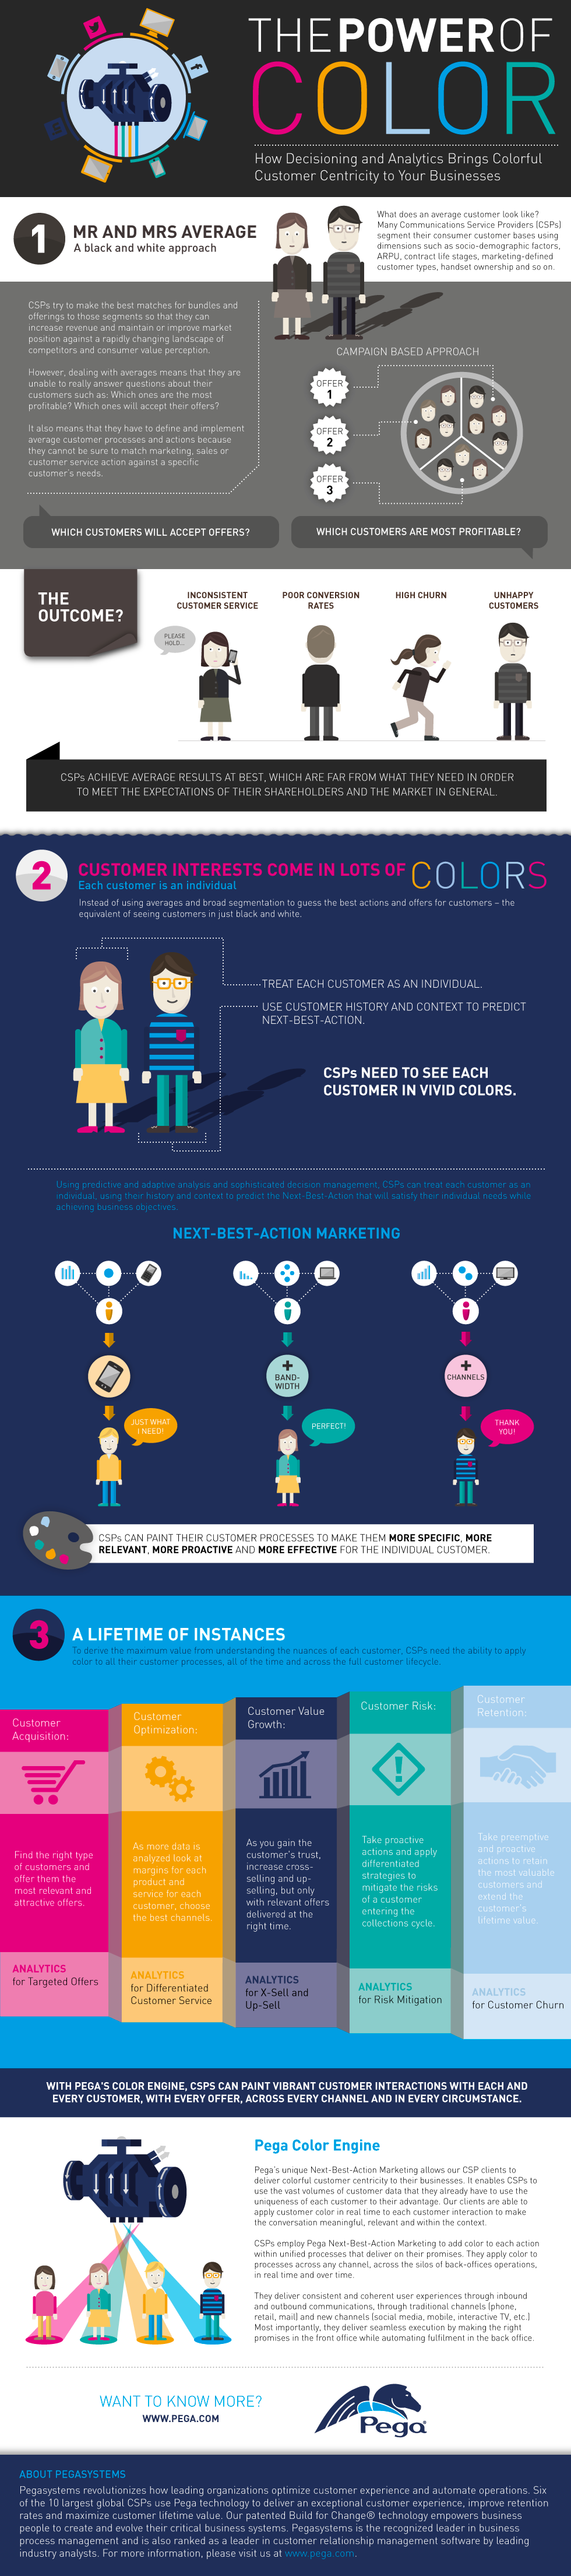 The Power of Colorful Customers infographic